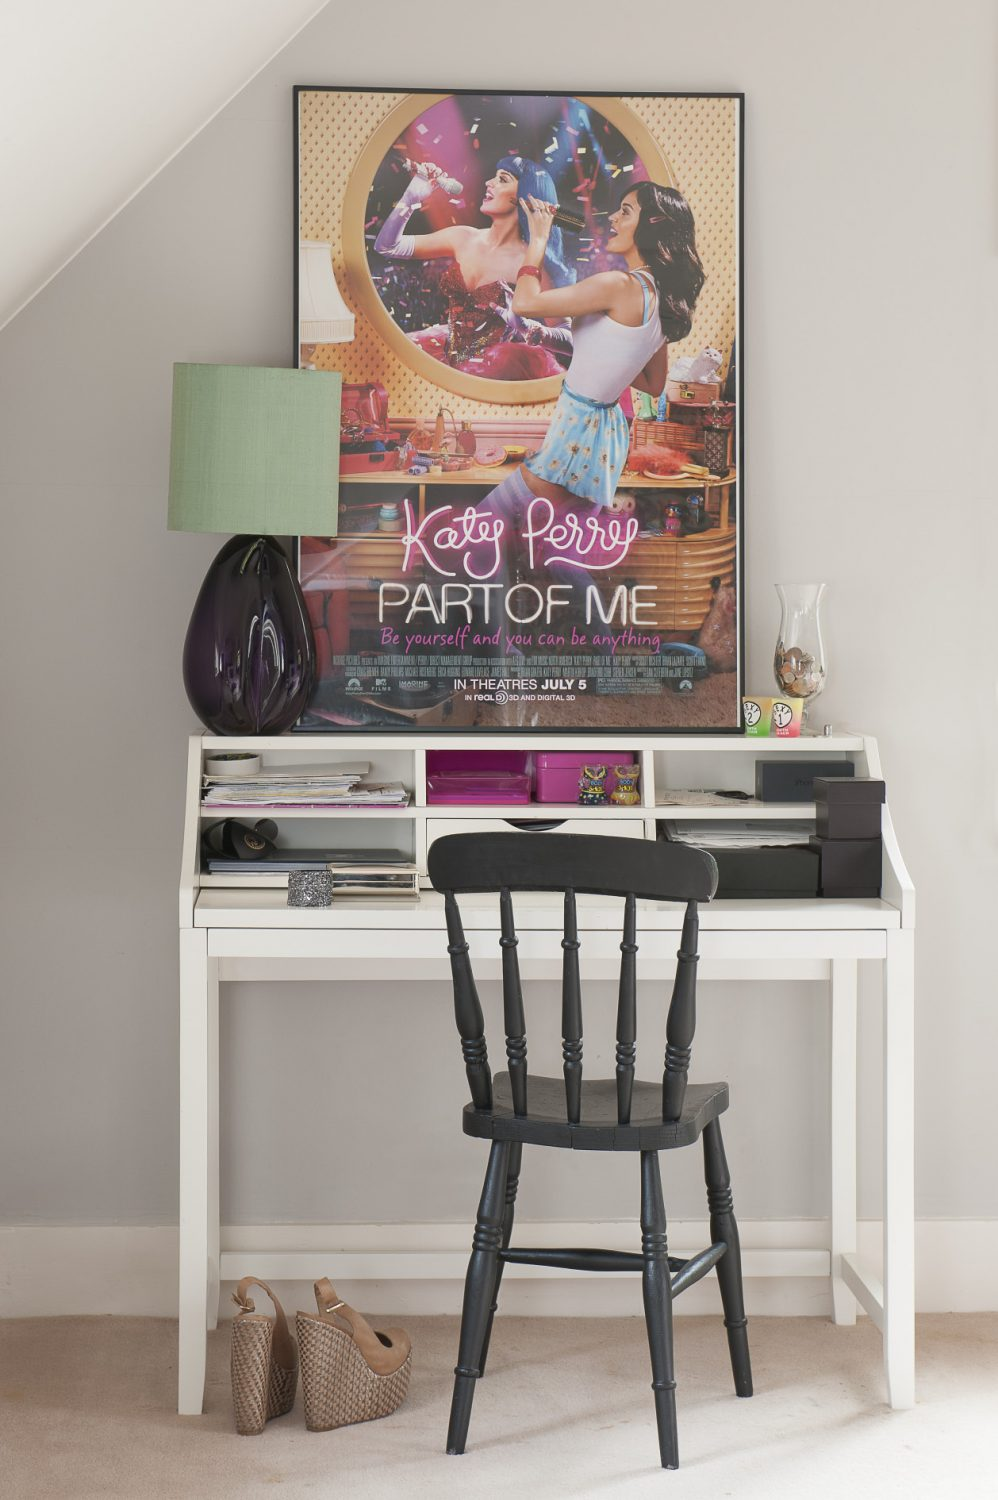 The decorative scheme is continued with the white desk and black chair, with pink accents in the accessories and poster. The lamp is by Porta Romana